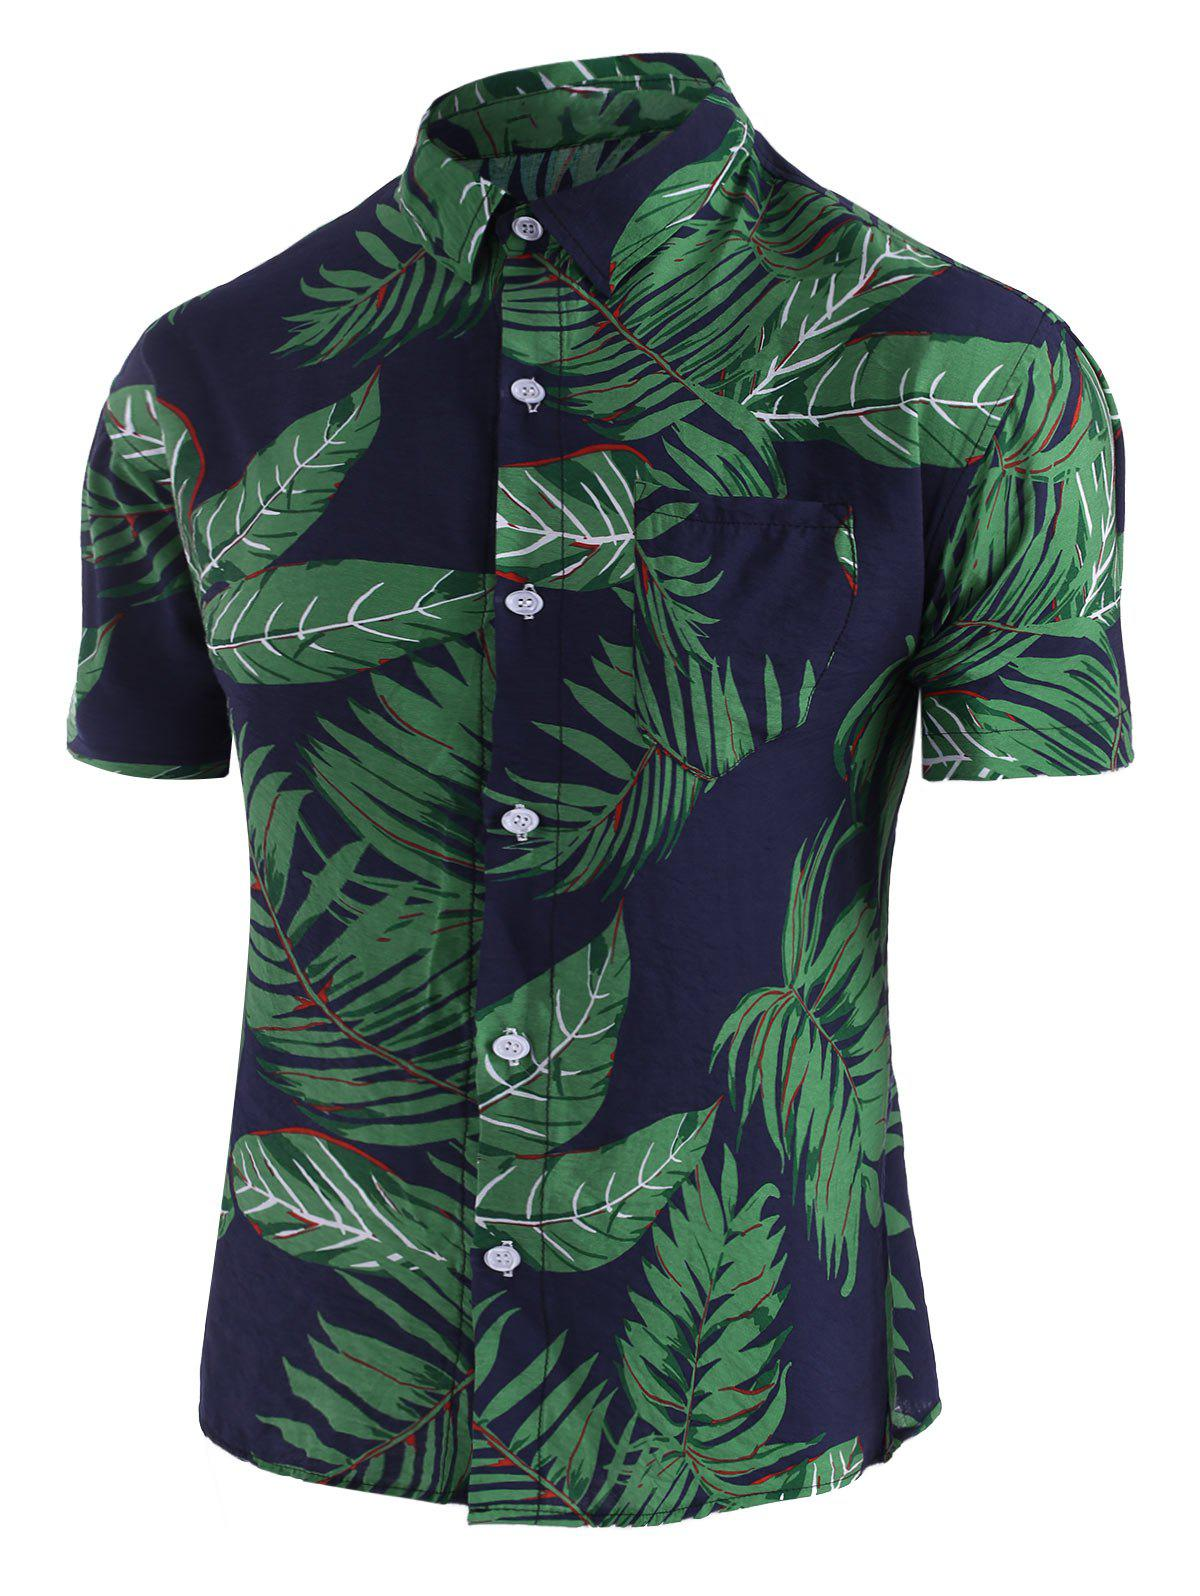 Fancy Leaf Print Pocket Beach Shirt